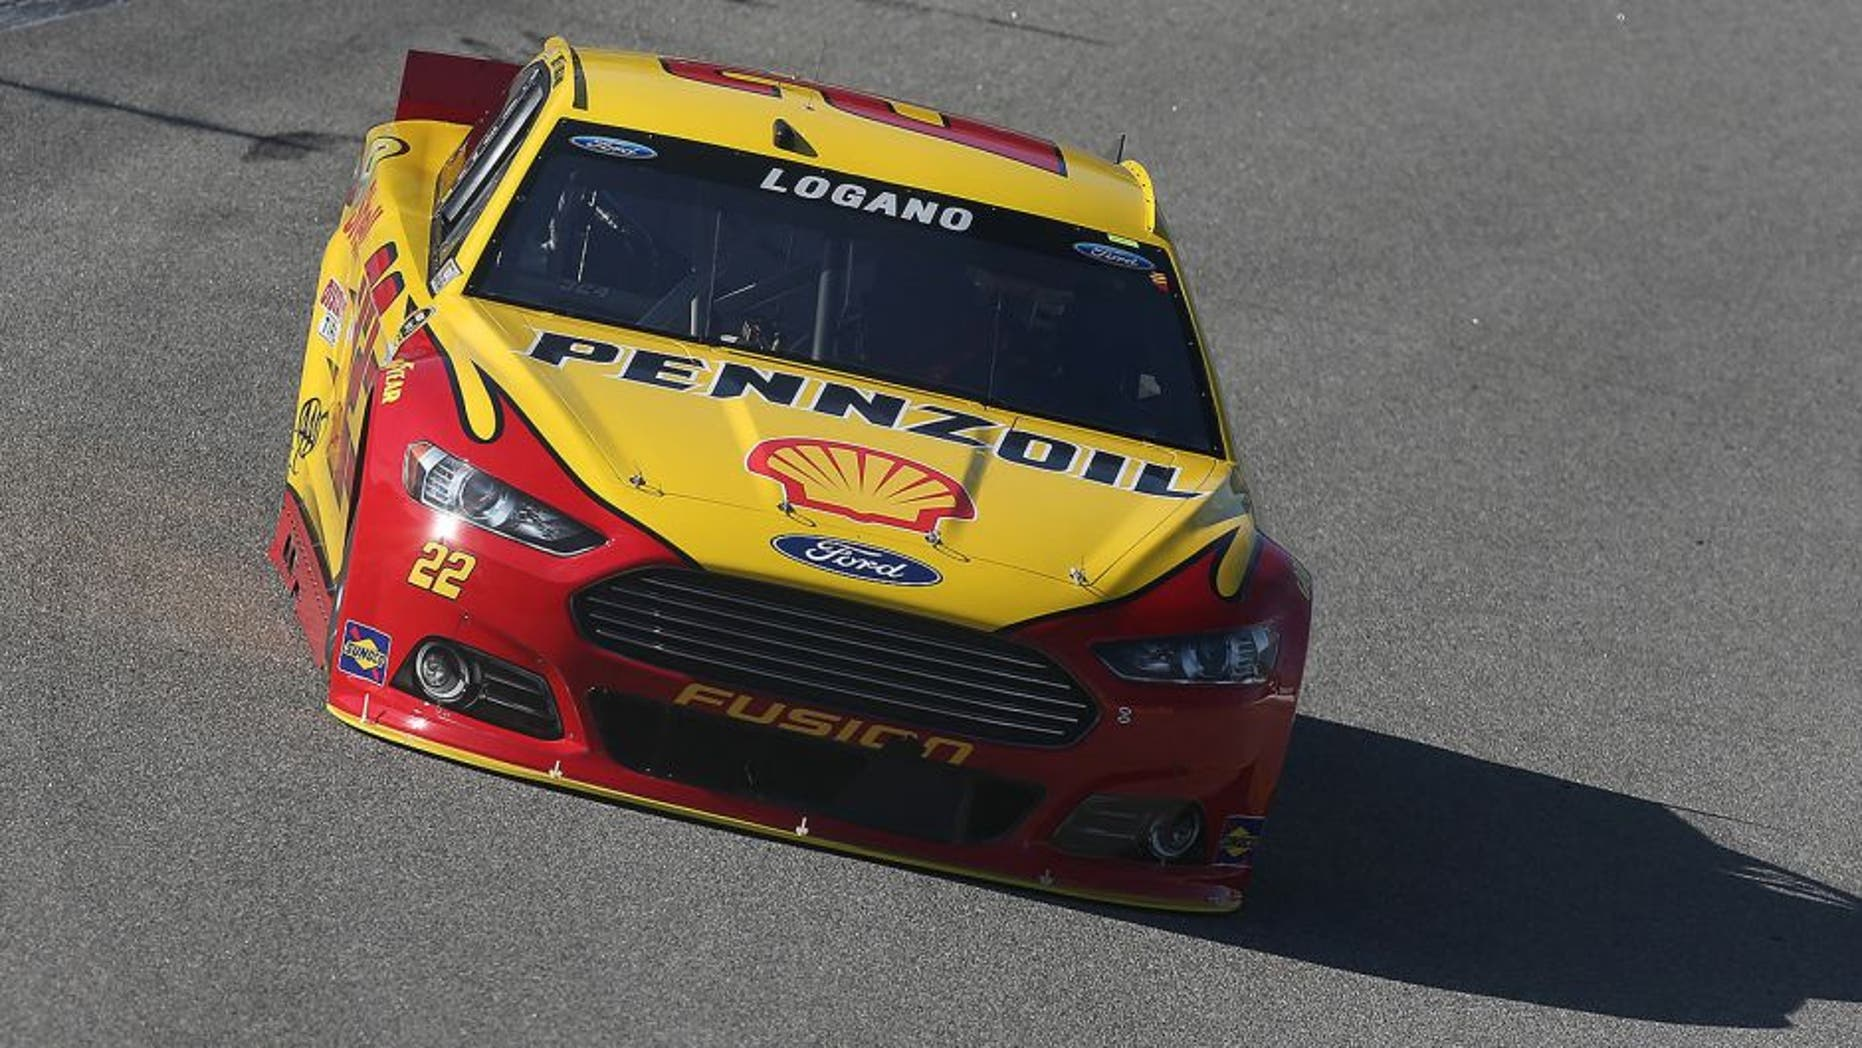 RICHMOND, VA - SEPTEMBER 11: Joey Logano, driver of the #22 Shell Pennzoil Ford, practices for the NASCAR Sprint Cup Series Federated Auto Parts 400 at Richmond International Raceway on September 11, 2015 in Richmond, Virginia. (Photo by Matt Sullivan/NASCAR via Getty Images)